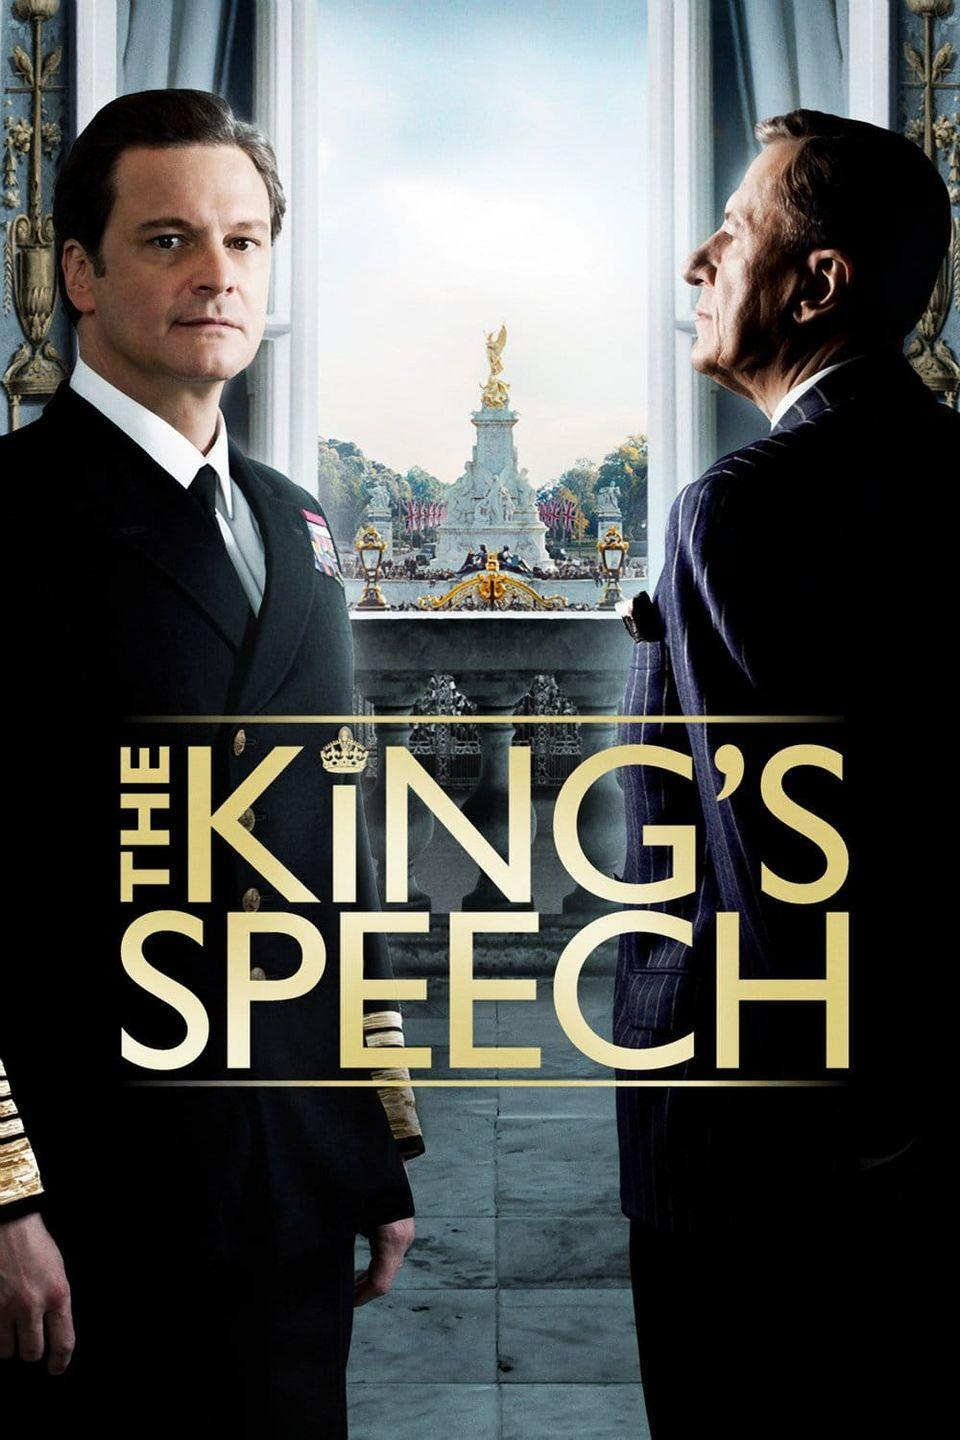 """<p>King George VI, played by Colin Firth, has to overcome a stutter before becoming king. He works with an Australian speech therapist, Lionel Logue, who ends up turning into a friend and mentor during this very important time. It's a lovely—and Academy Award-winning—movie about overcoming personal obstacles.</p><p><a class=""""link rapid-noclick-resp"""" href=""""https://www.amazon.com/Kings-Speech-Colin-Firth/dp/B004R36QUE?tag=syn-yahoo-20&ascsubtag=%5Bartid%7C10063.g.36572054%5Bsrc%7Cyahoo-us"""" rel=""""nofollow noopener"""" target=""""_blank"""" data-ylk=""""slk:Watch Here"""">Watch Here</a></p>"""